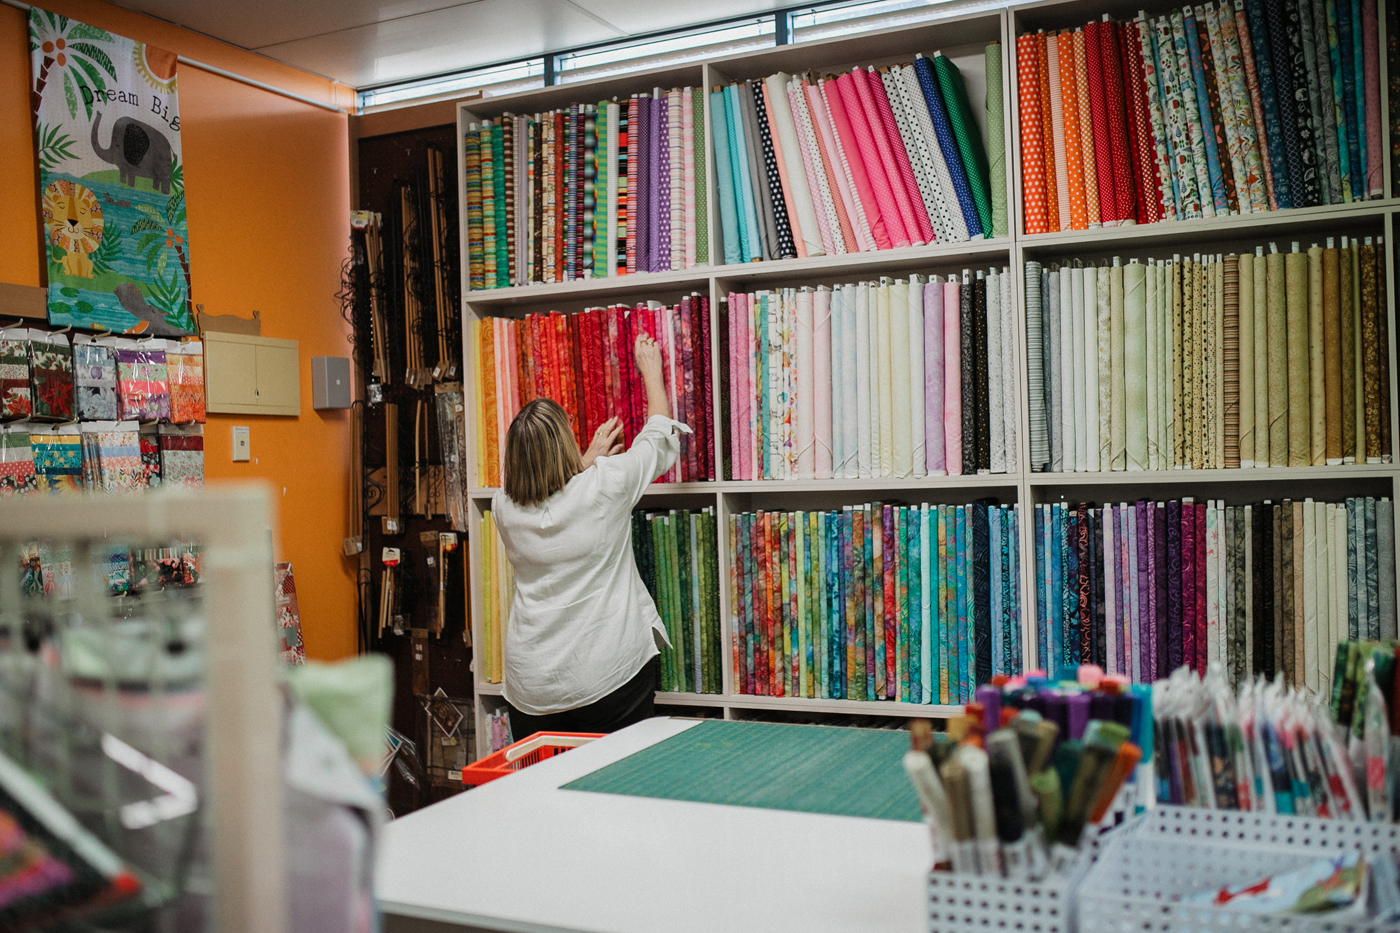 Needleworx staff browsing rows of fabric swatches